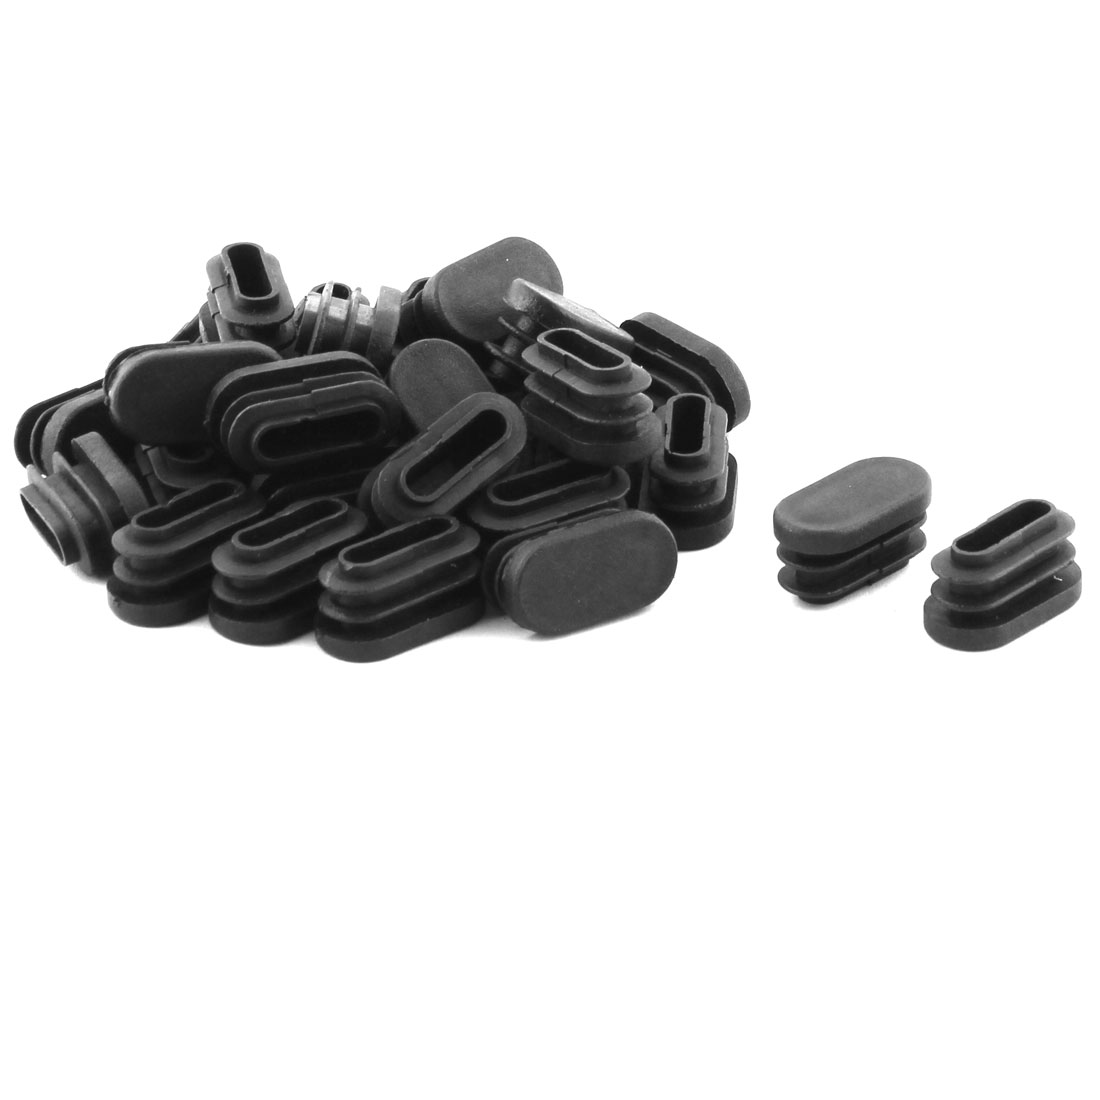 Chair Legs Plastic Oval Shaped Tube Pipe Inserts End Caps 30 x 15mm 30 PCS